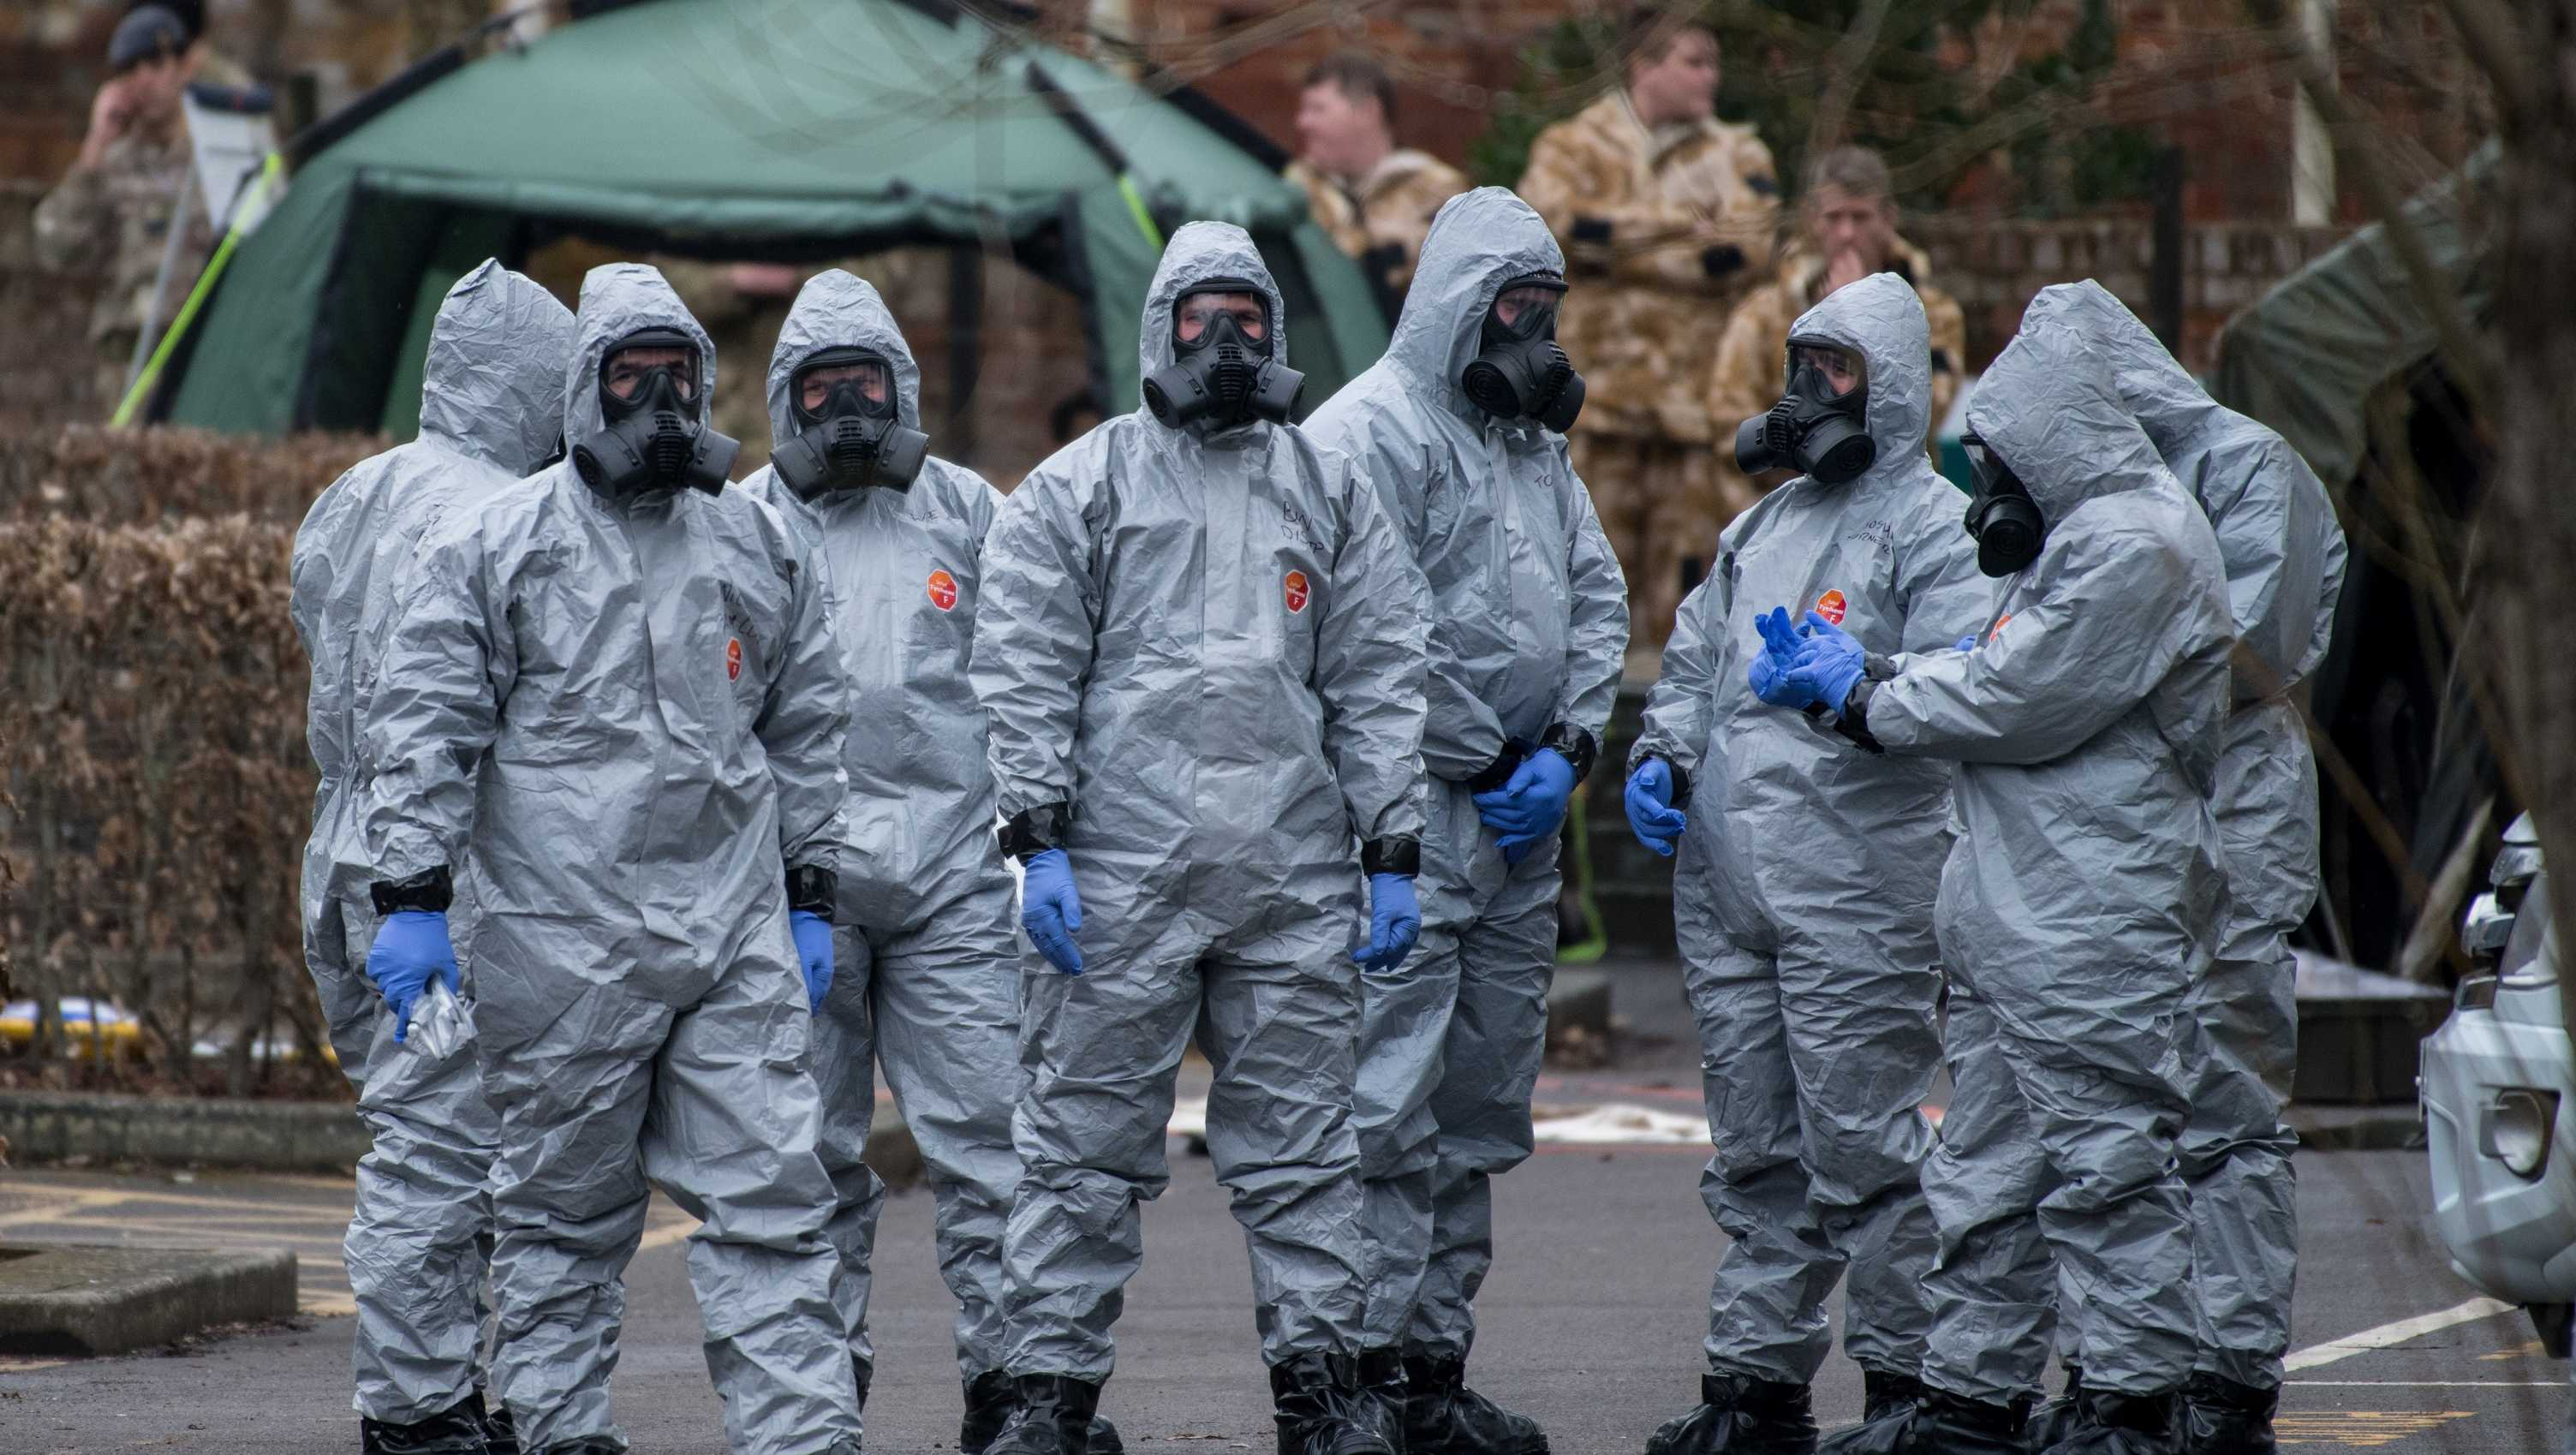 Military personnel wearing protective suits remove a police car and other vehicles from a public car park as they continue investigations into the poisoning of Sergei Skripal on March 11, 2018 in Salisbury, England.